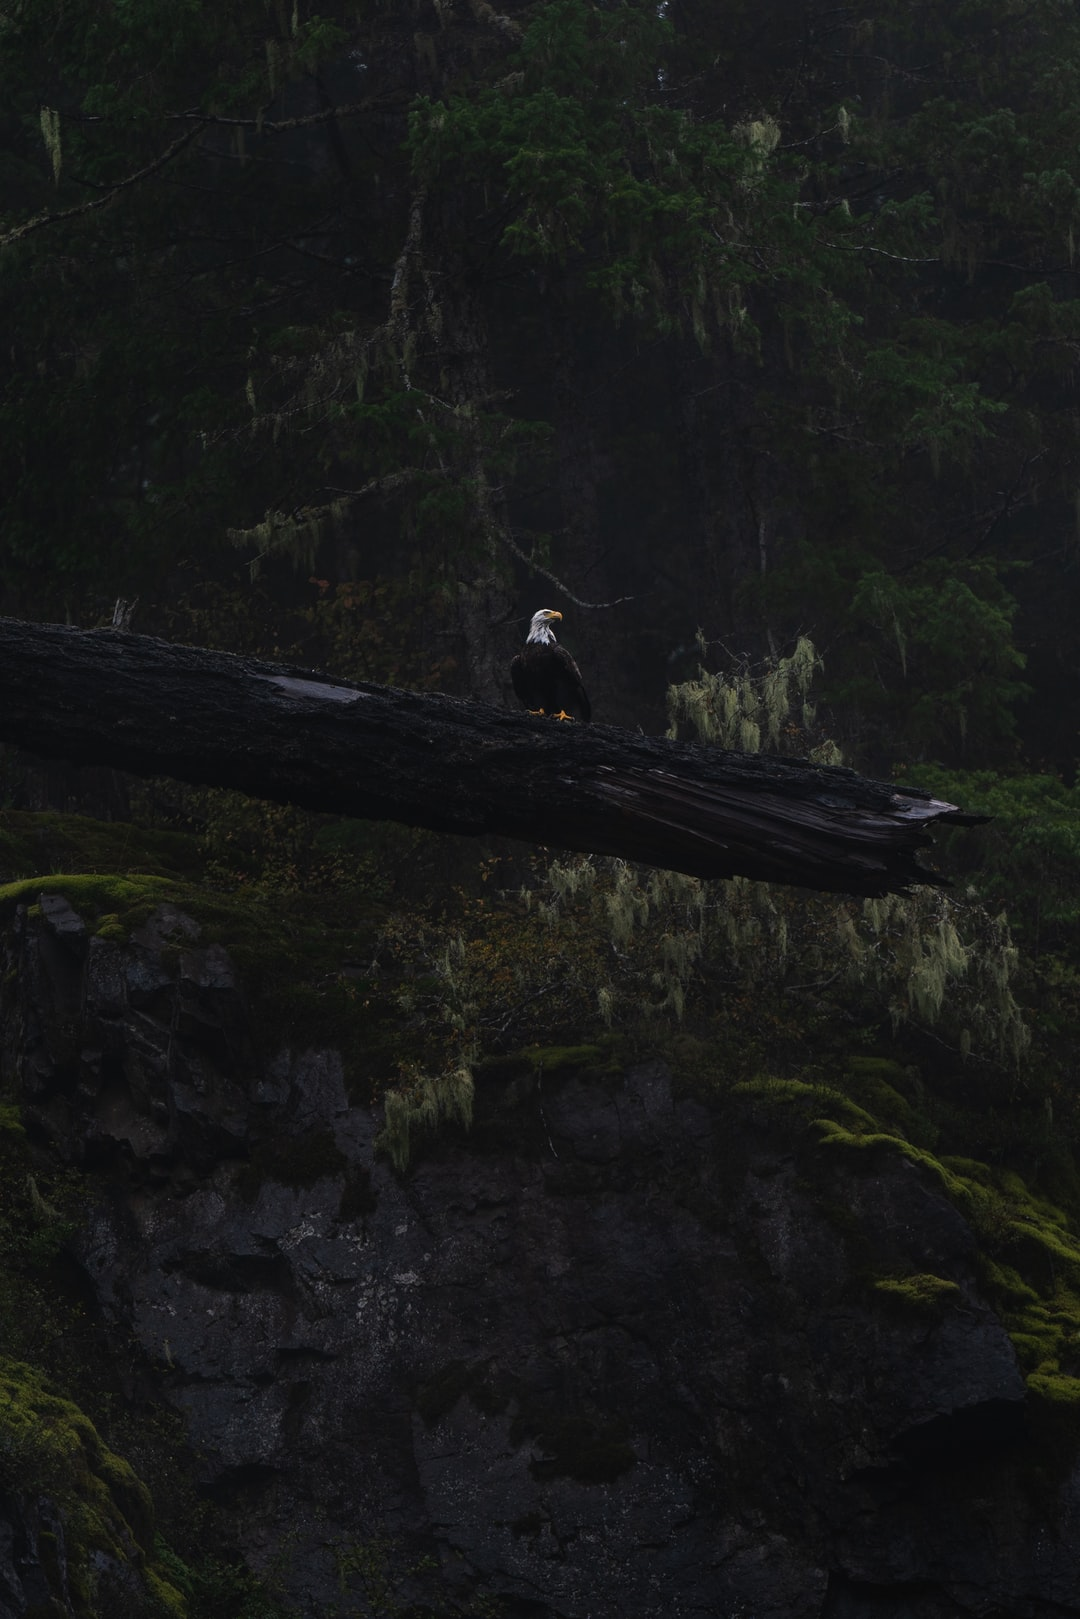 A bald eagle perched on a fallen tree